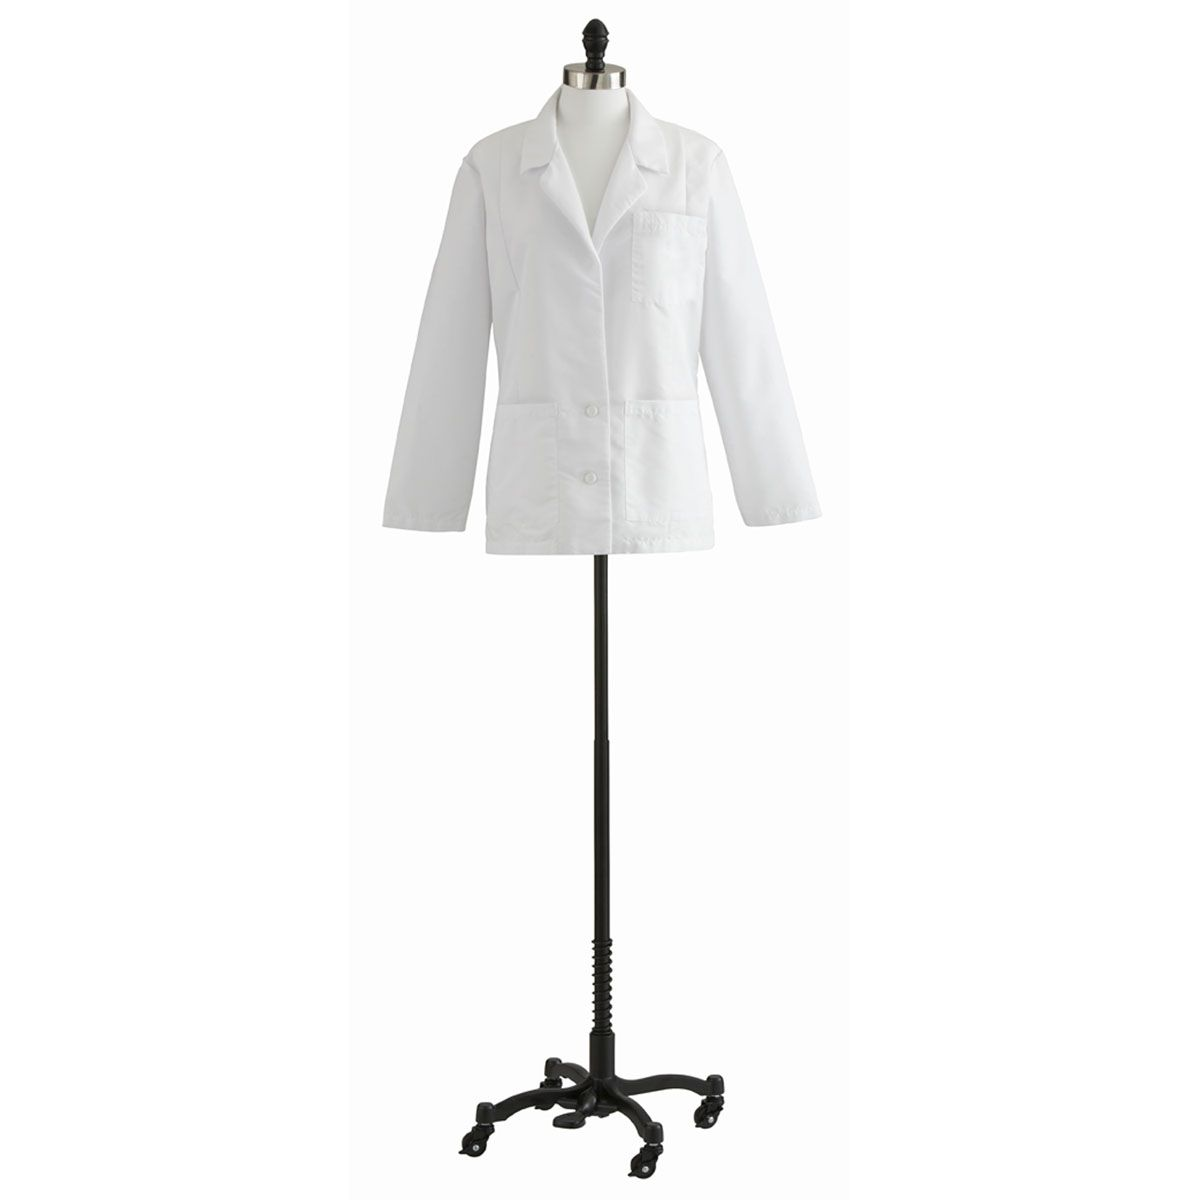 Medline Ladies Consultation Coat - White, 14, Each - Model 88018QHW14